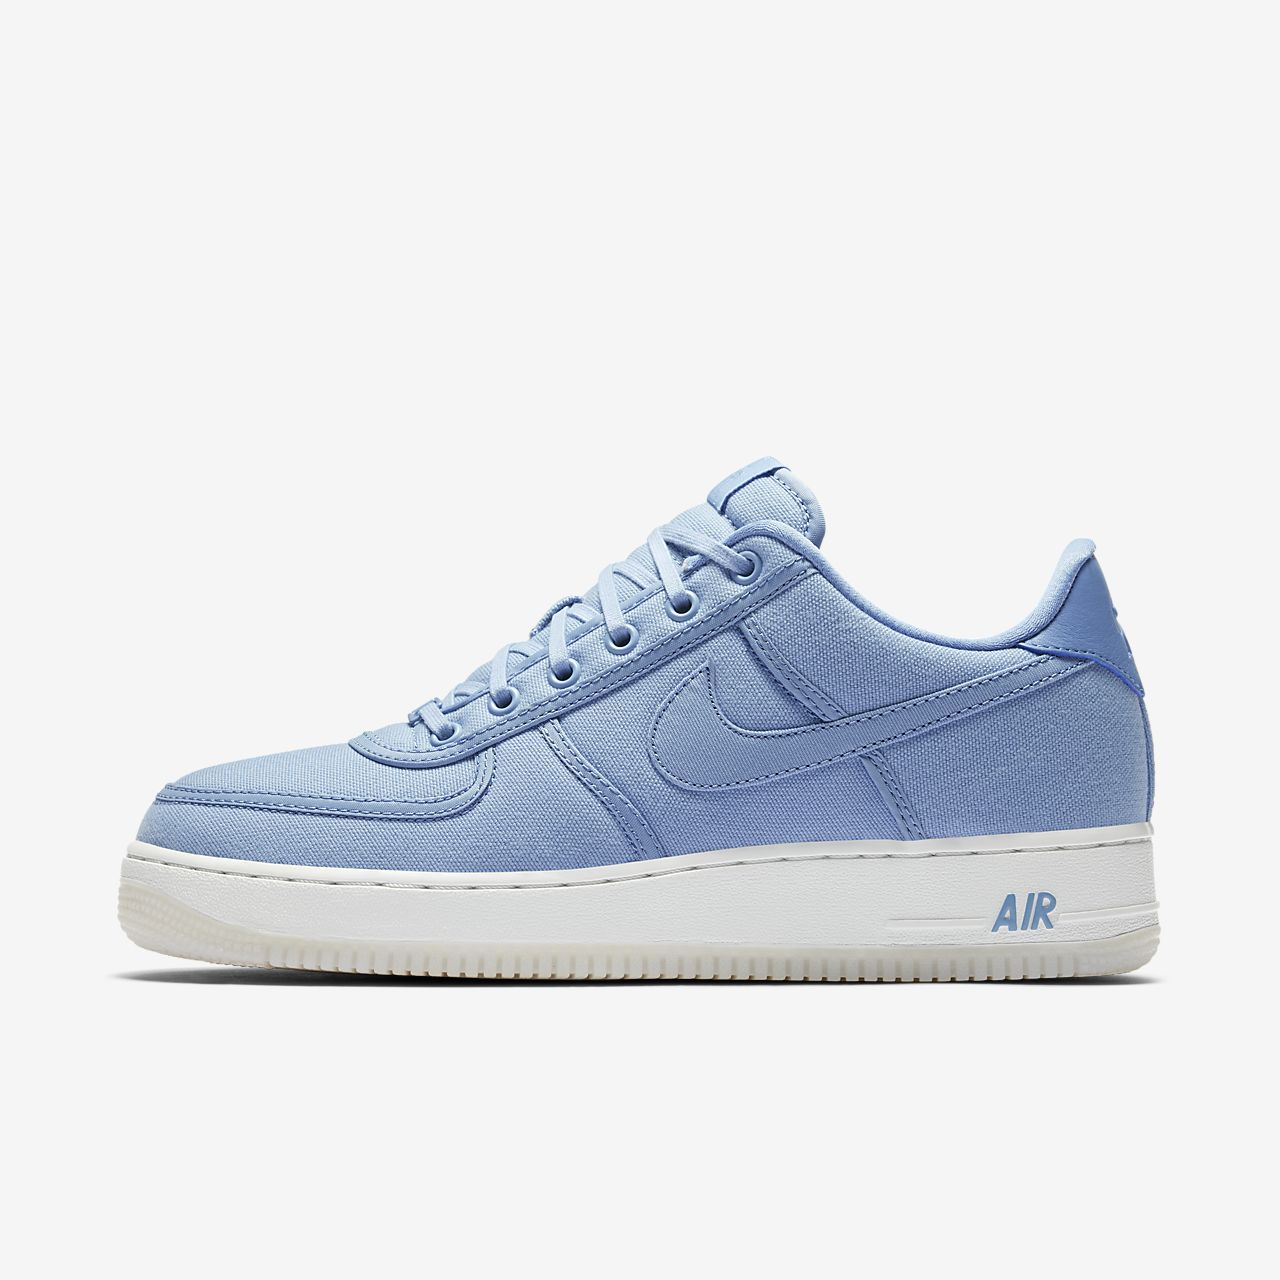 low priced 9ced1 2a0b6 1 Air Qs Nl Low Force Nike Retro Herenschoen vqdw7EE